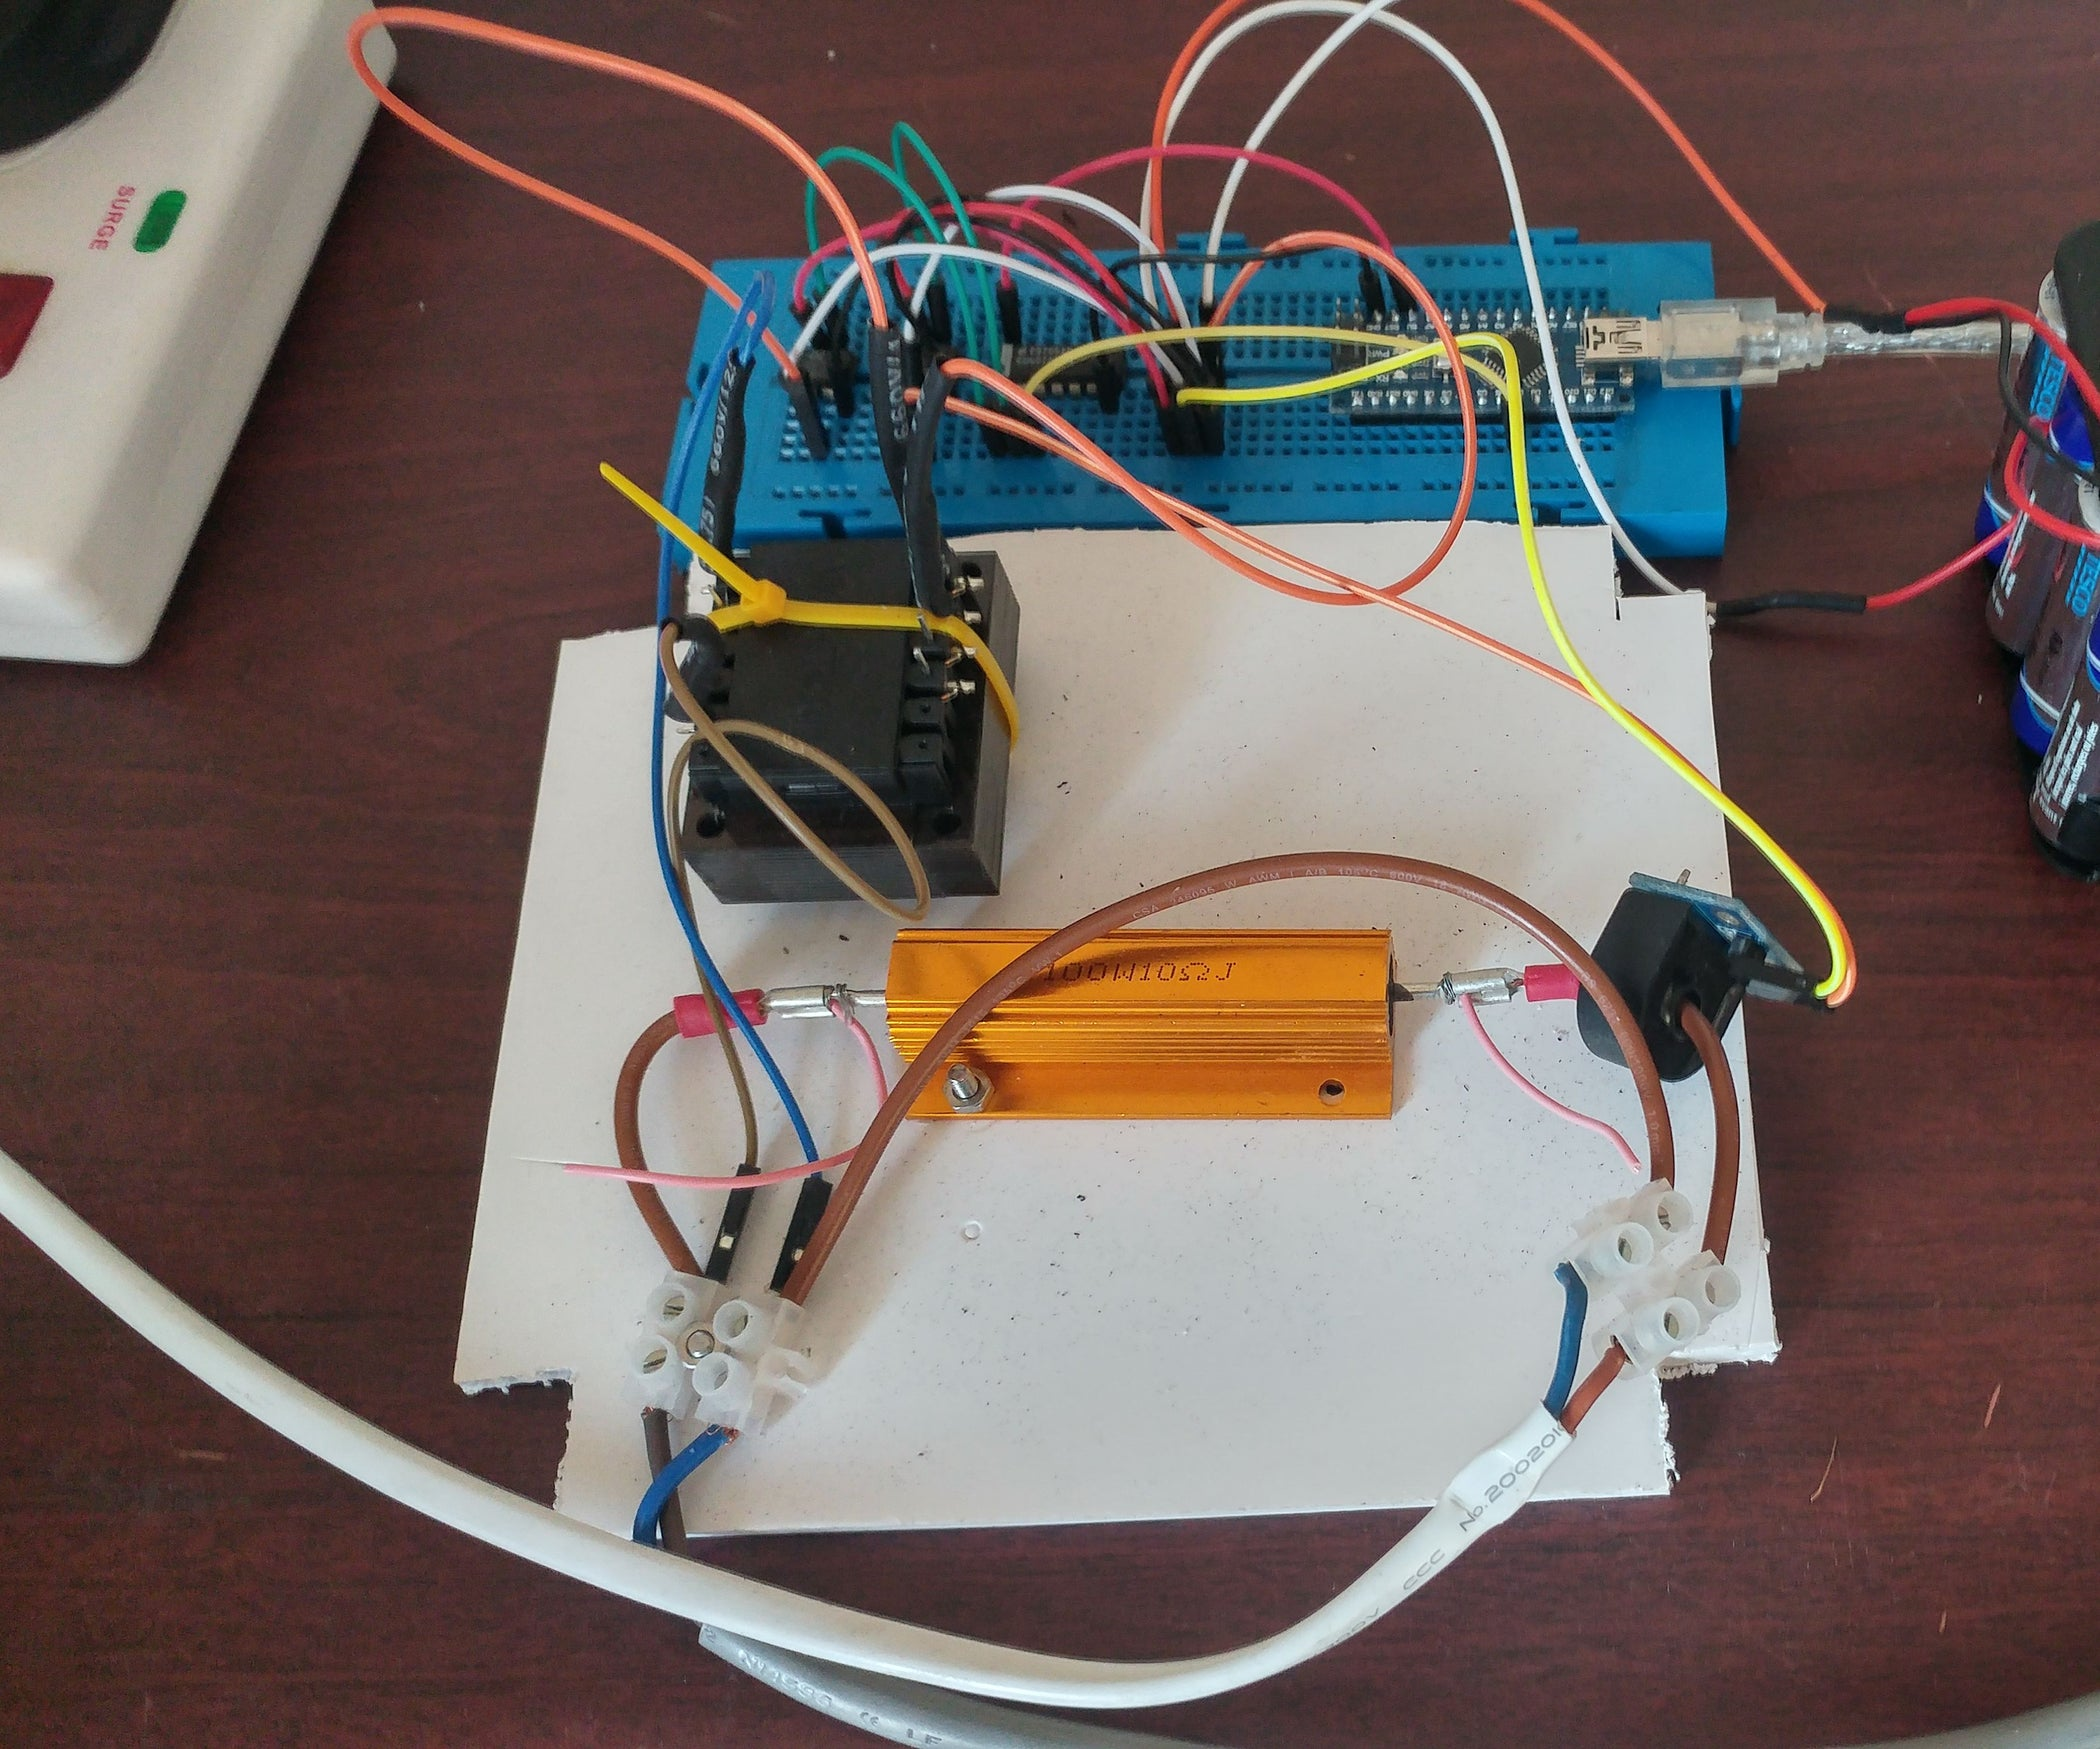 How To Measure Ac Power Factor Using Arduino 4 Steps Way Guitar Switch Wiring Diagram Pinterest